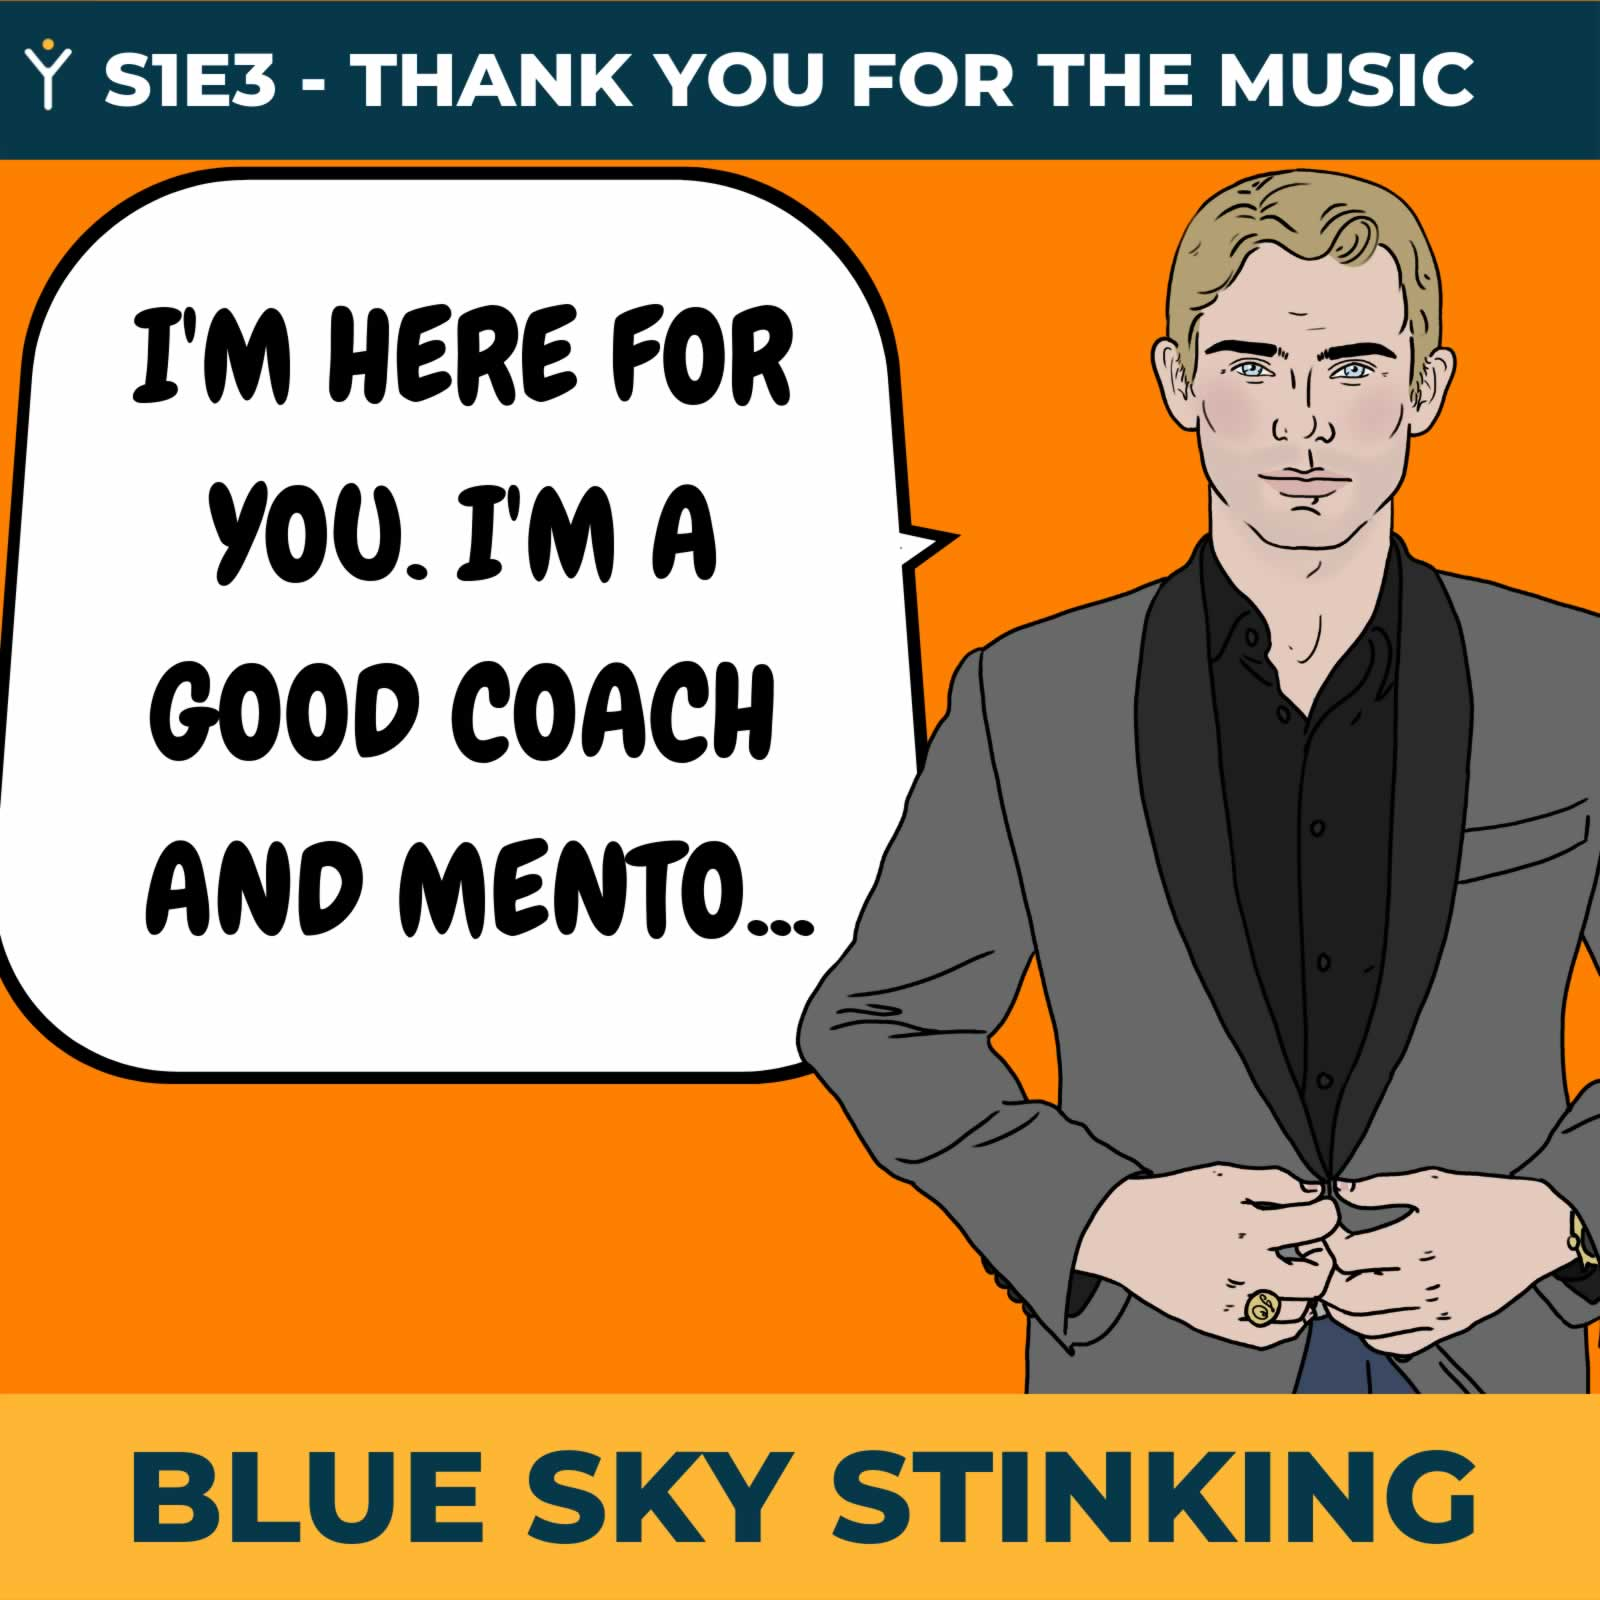 Blue Sky Stinking Episode 3 BSS3 - Thank you for the music, business operations setup